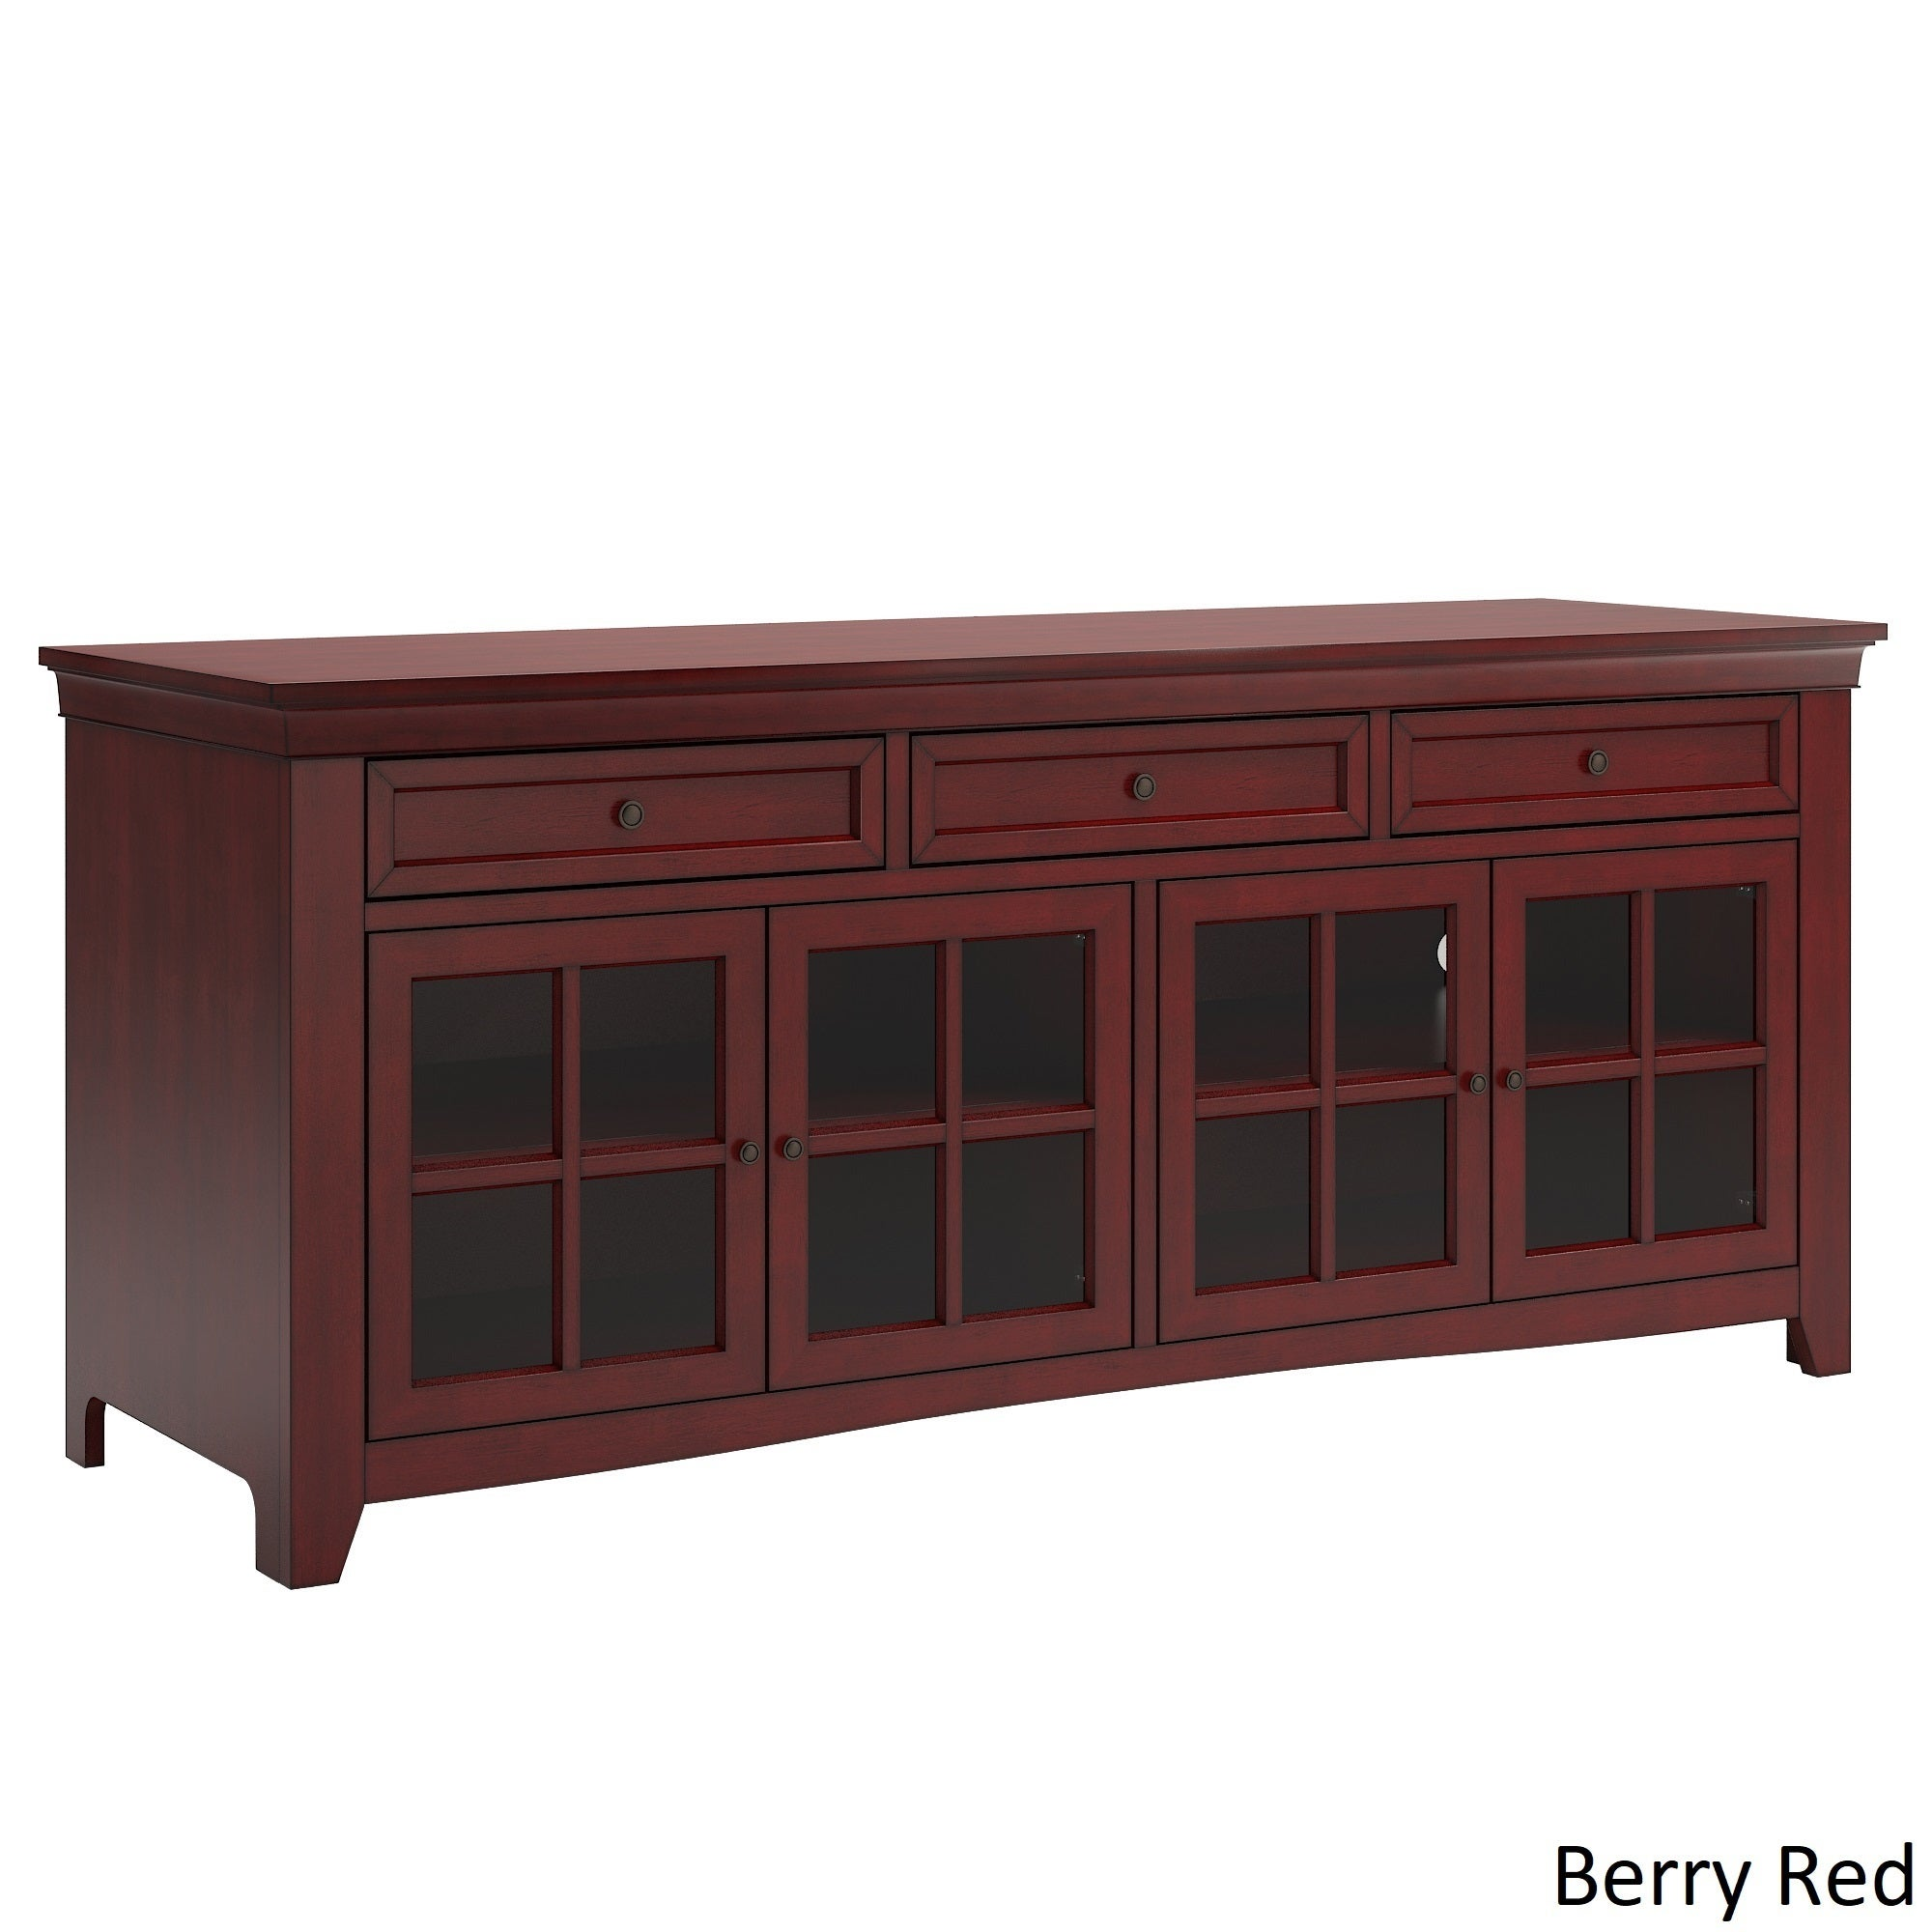 Ediline 70 Inch 3 Drawer Console Table Tv Stand With Gl Door And Built In Strip By Inspire Q Clic On Free Shipping Today